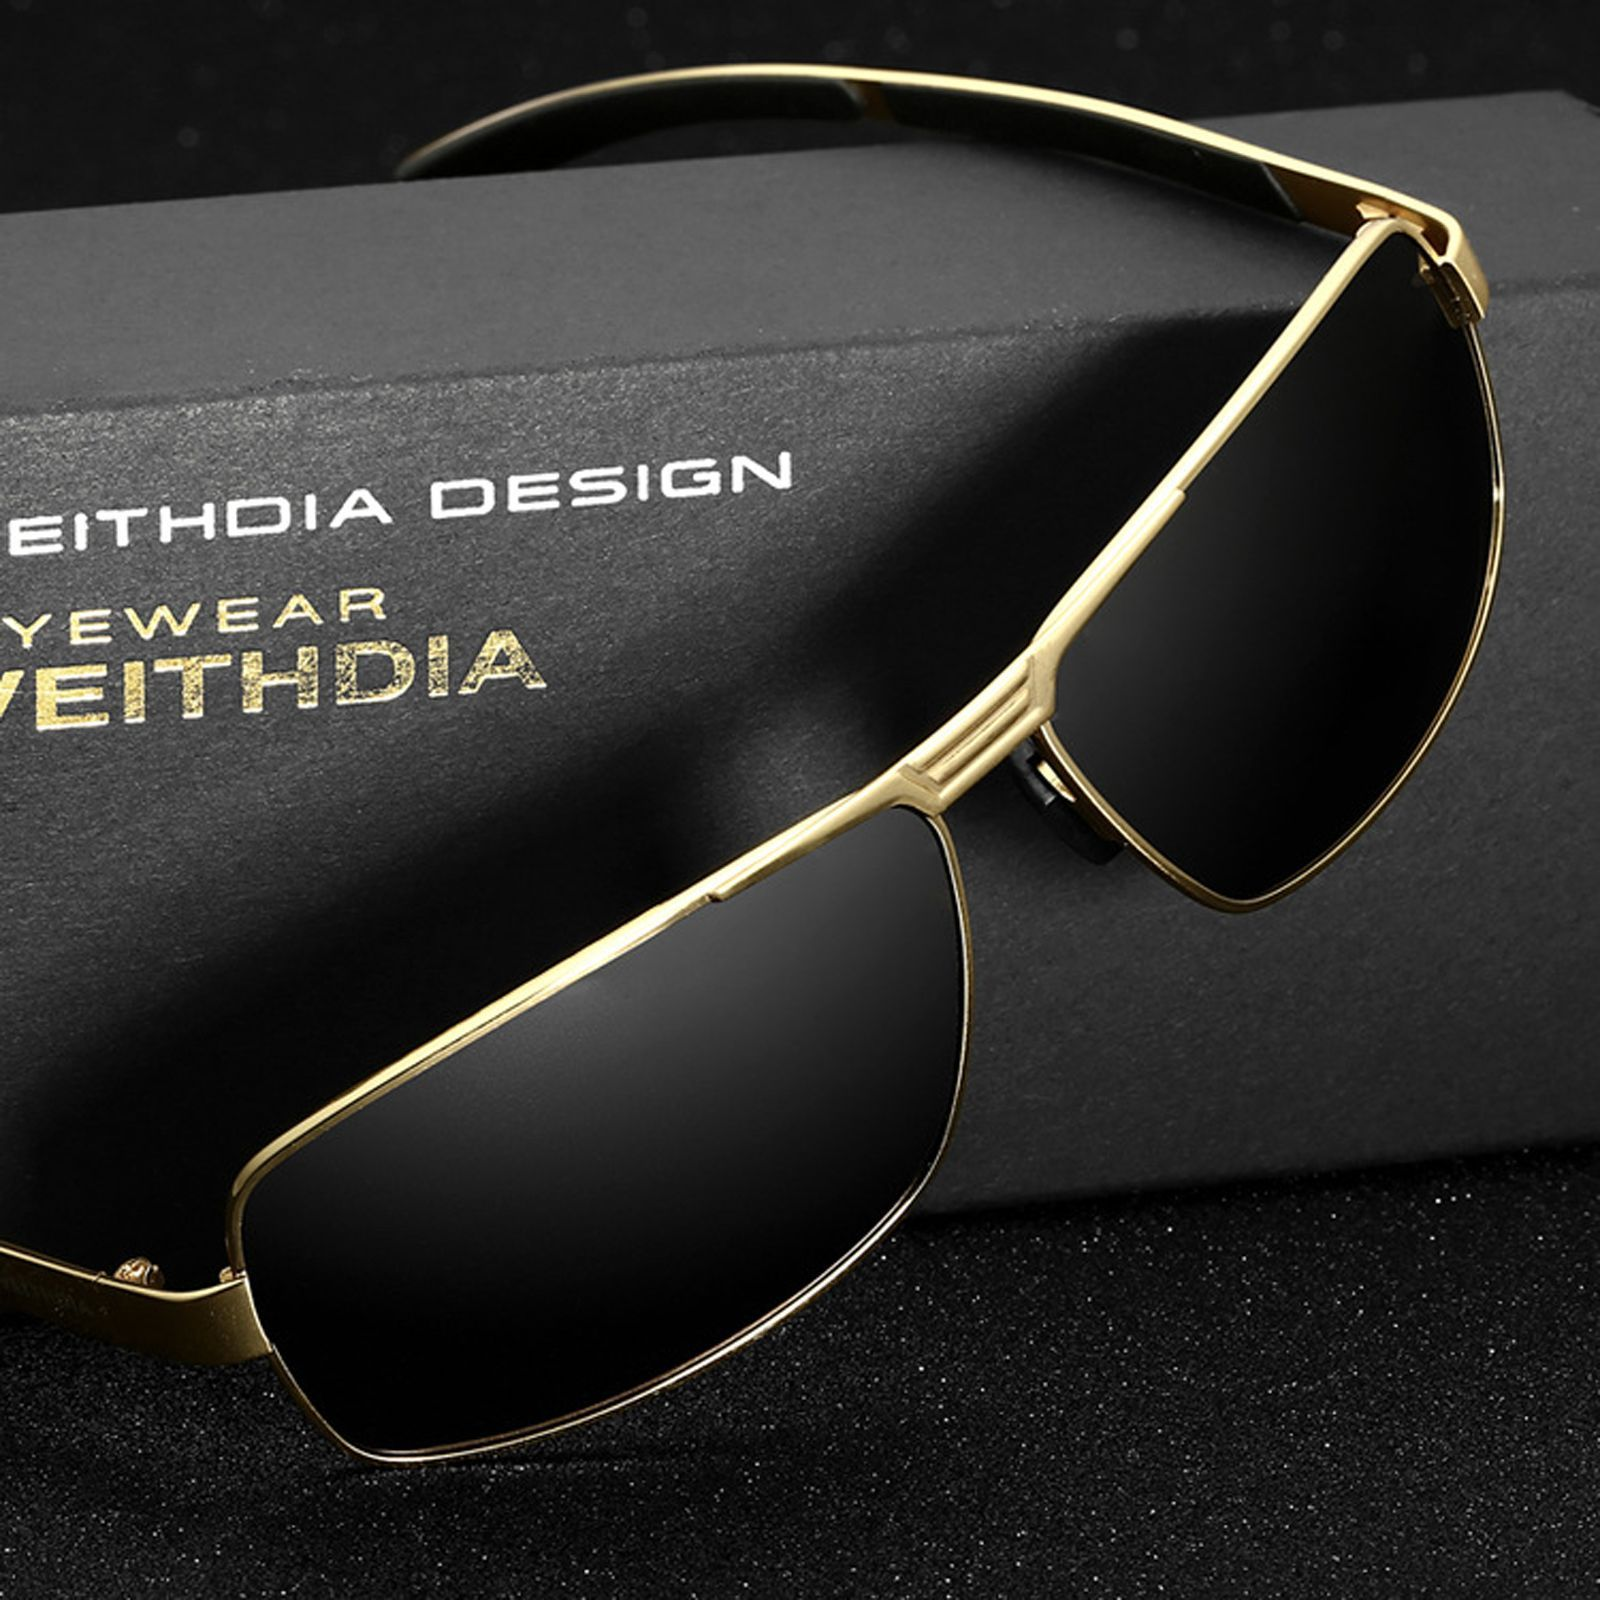 89c403f33f VEITHDIA Brand Men s Sunglasses Polarized Sports Sun Glasses Driving oculos  de sol masculino Eyewear Accessories For